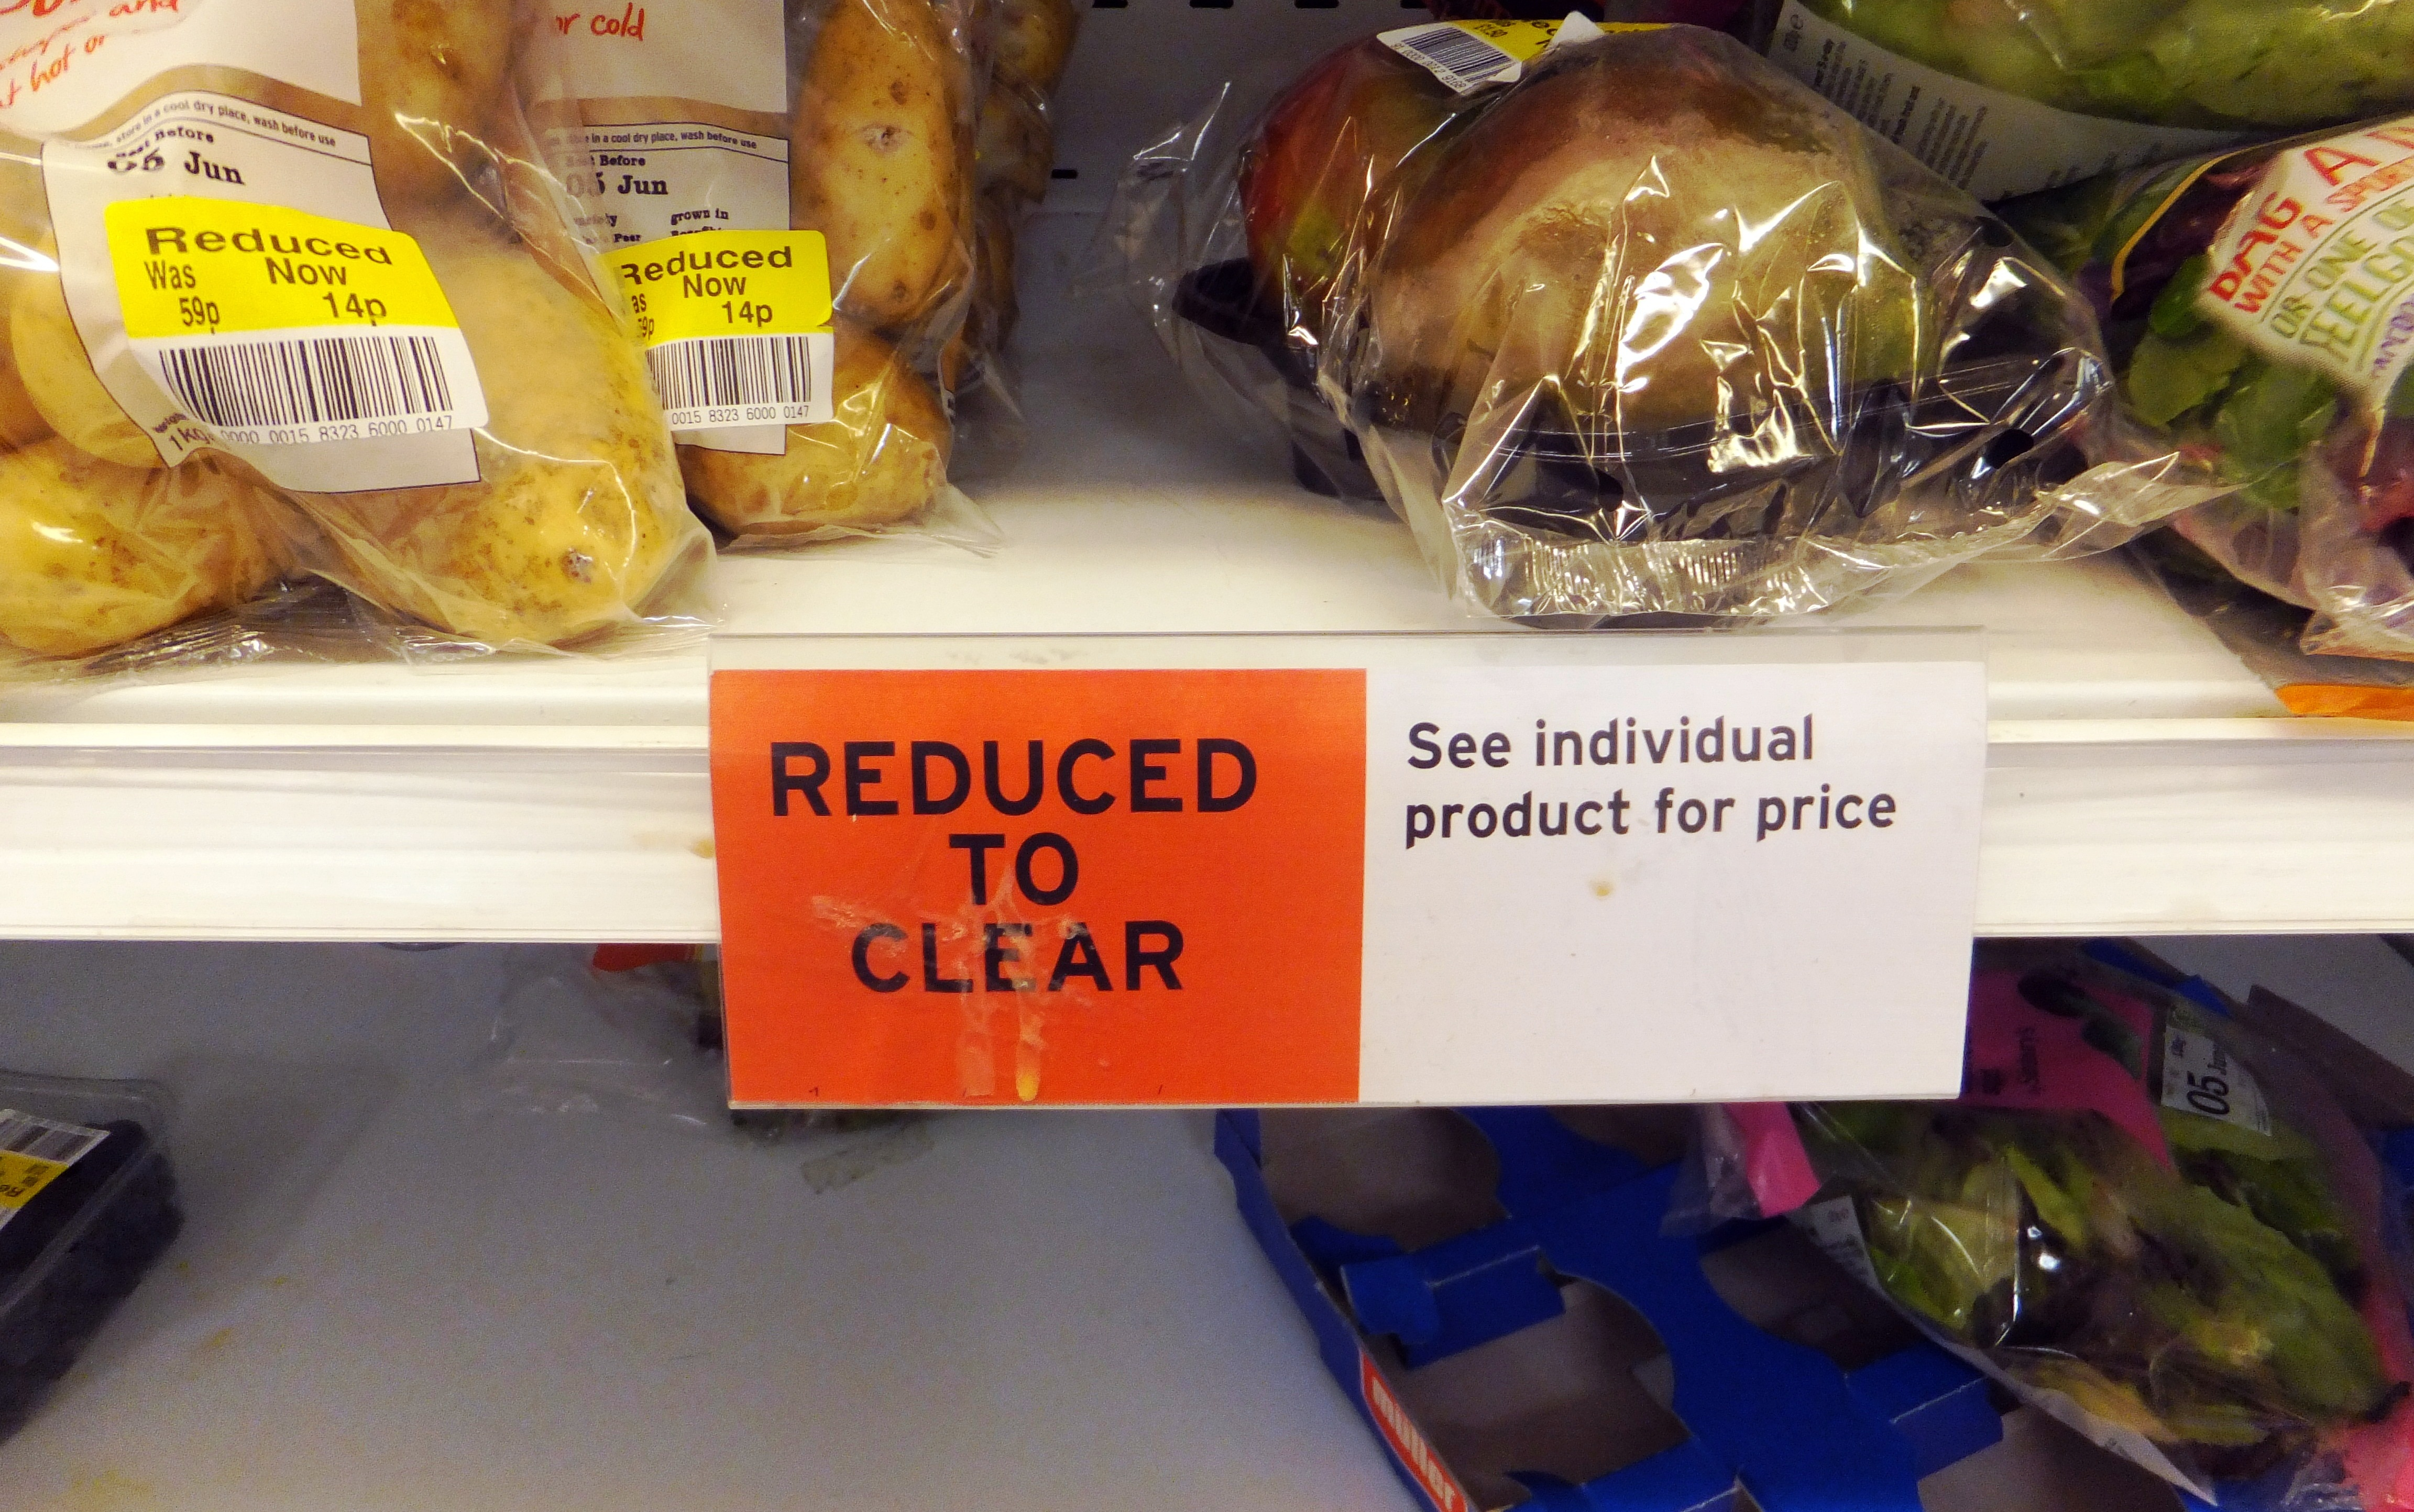 Sainsbury's Reduced to Clear